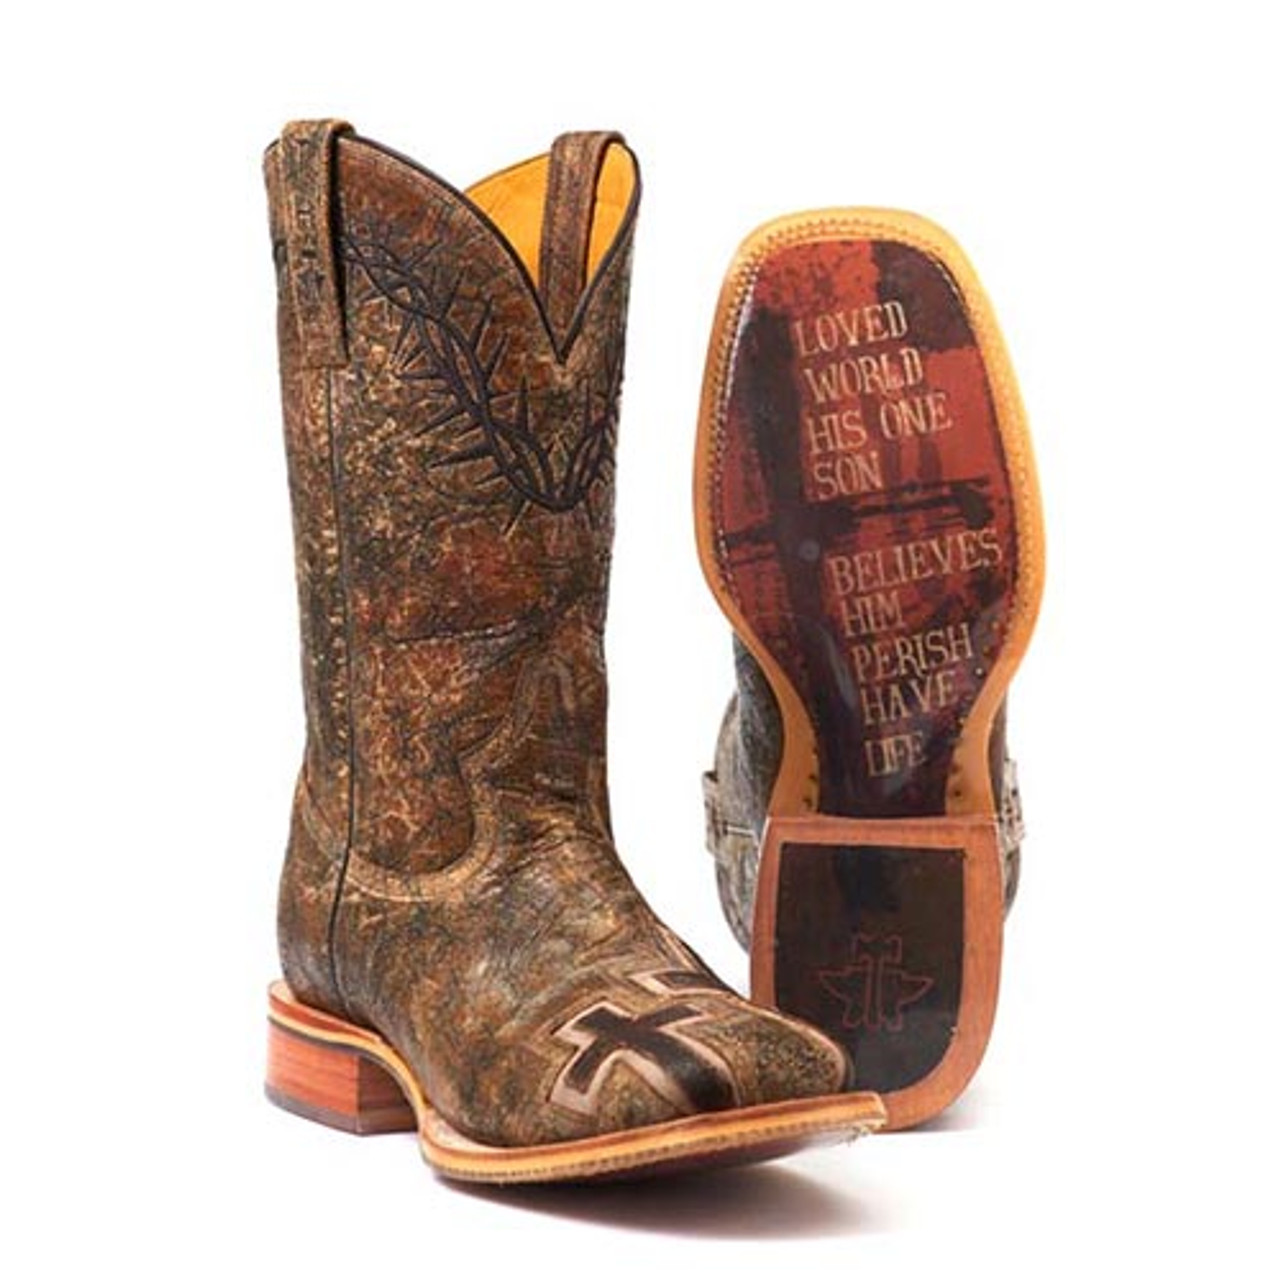 d722ff349f8 Tin Haul Men's Boots - John 3:16 Boots With Bible Verse Sole Handcrafted